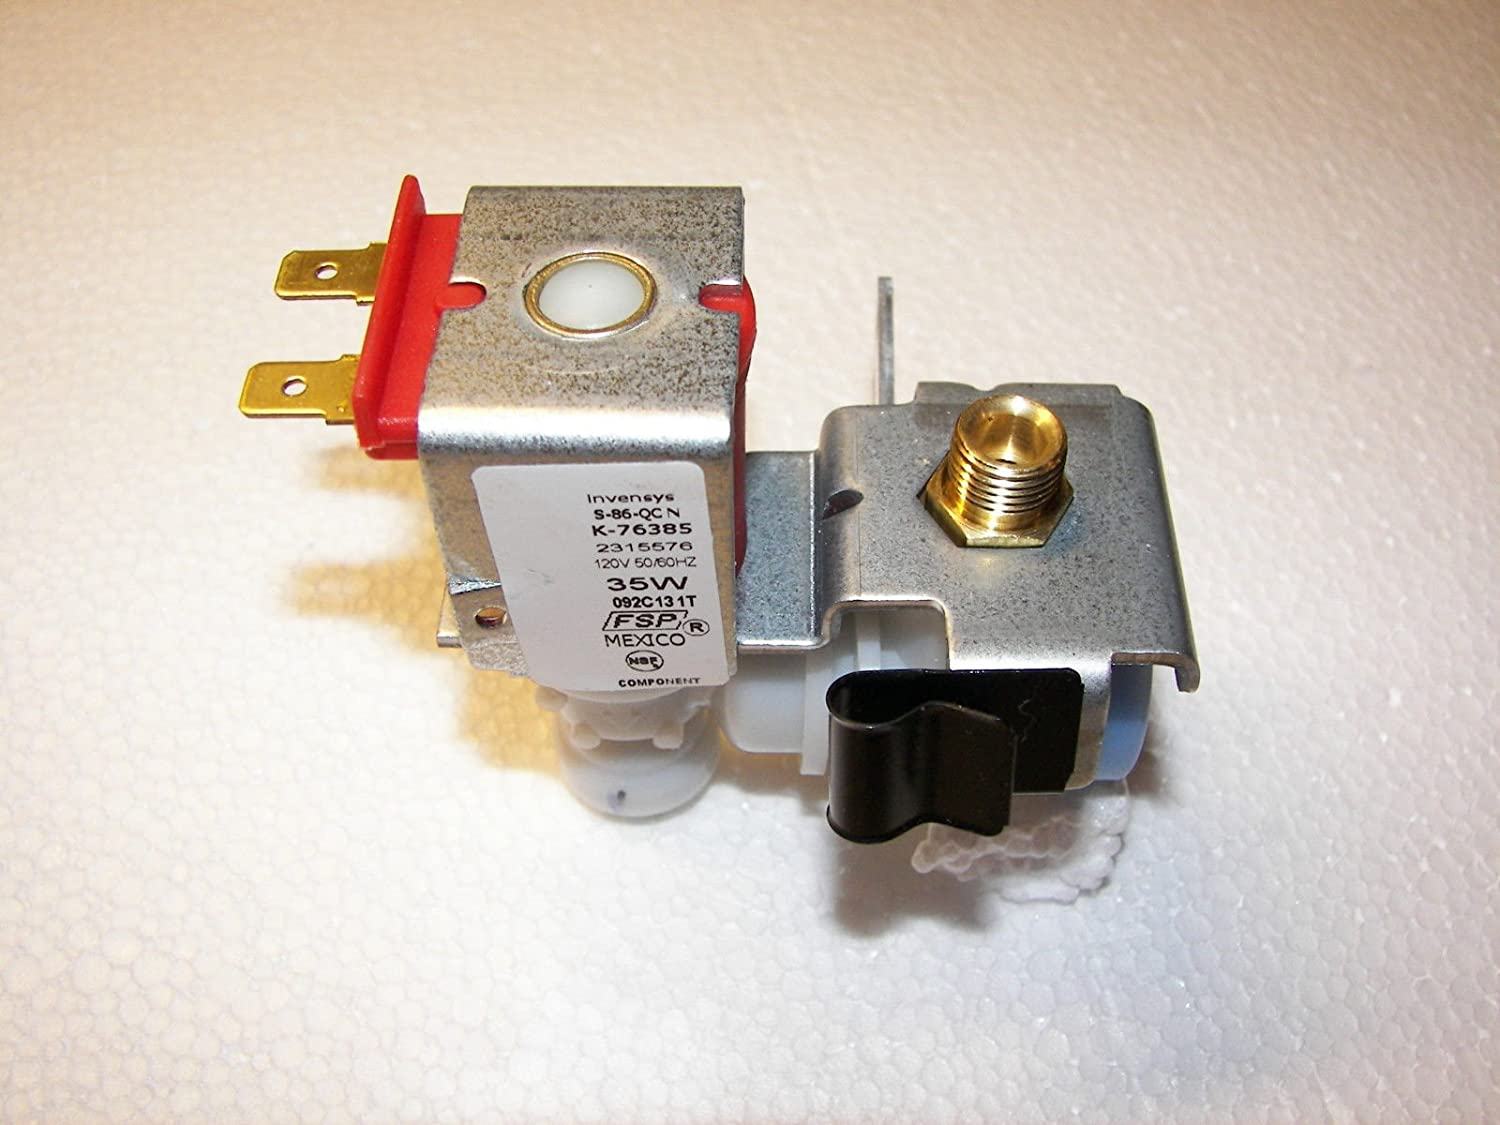 FSP Invensys Universal Refrigerator Ice Maker Water Valve 2315576, S-86-QC N